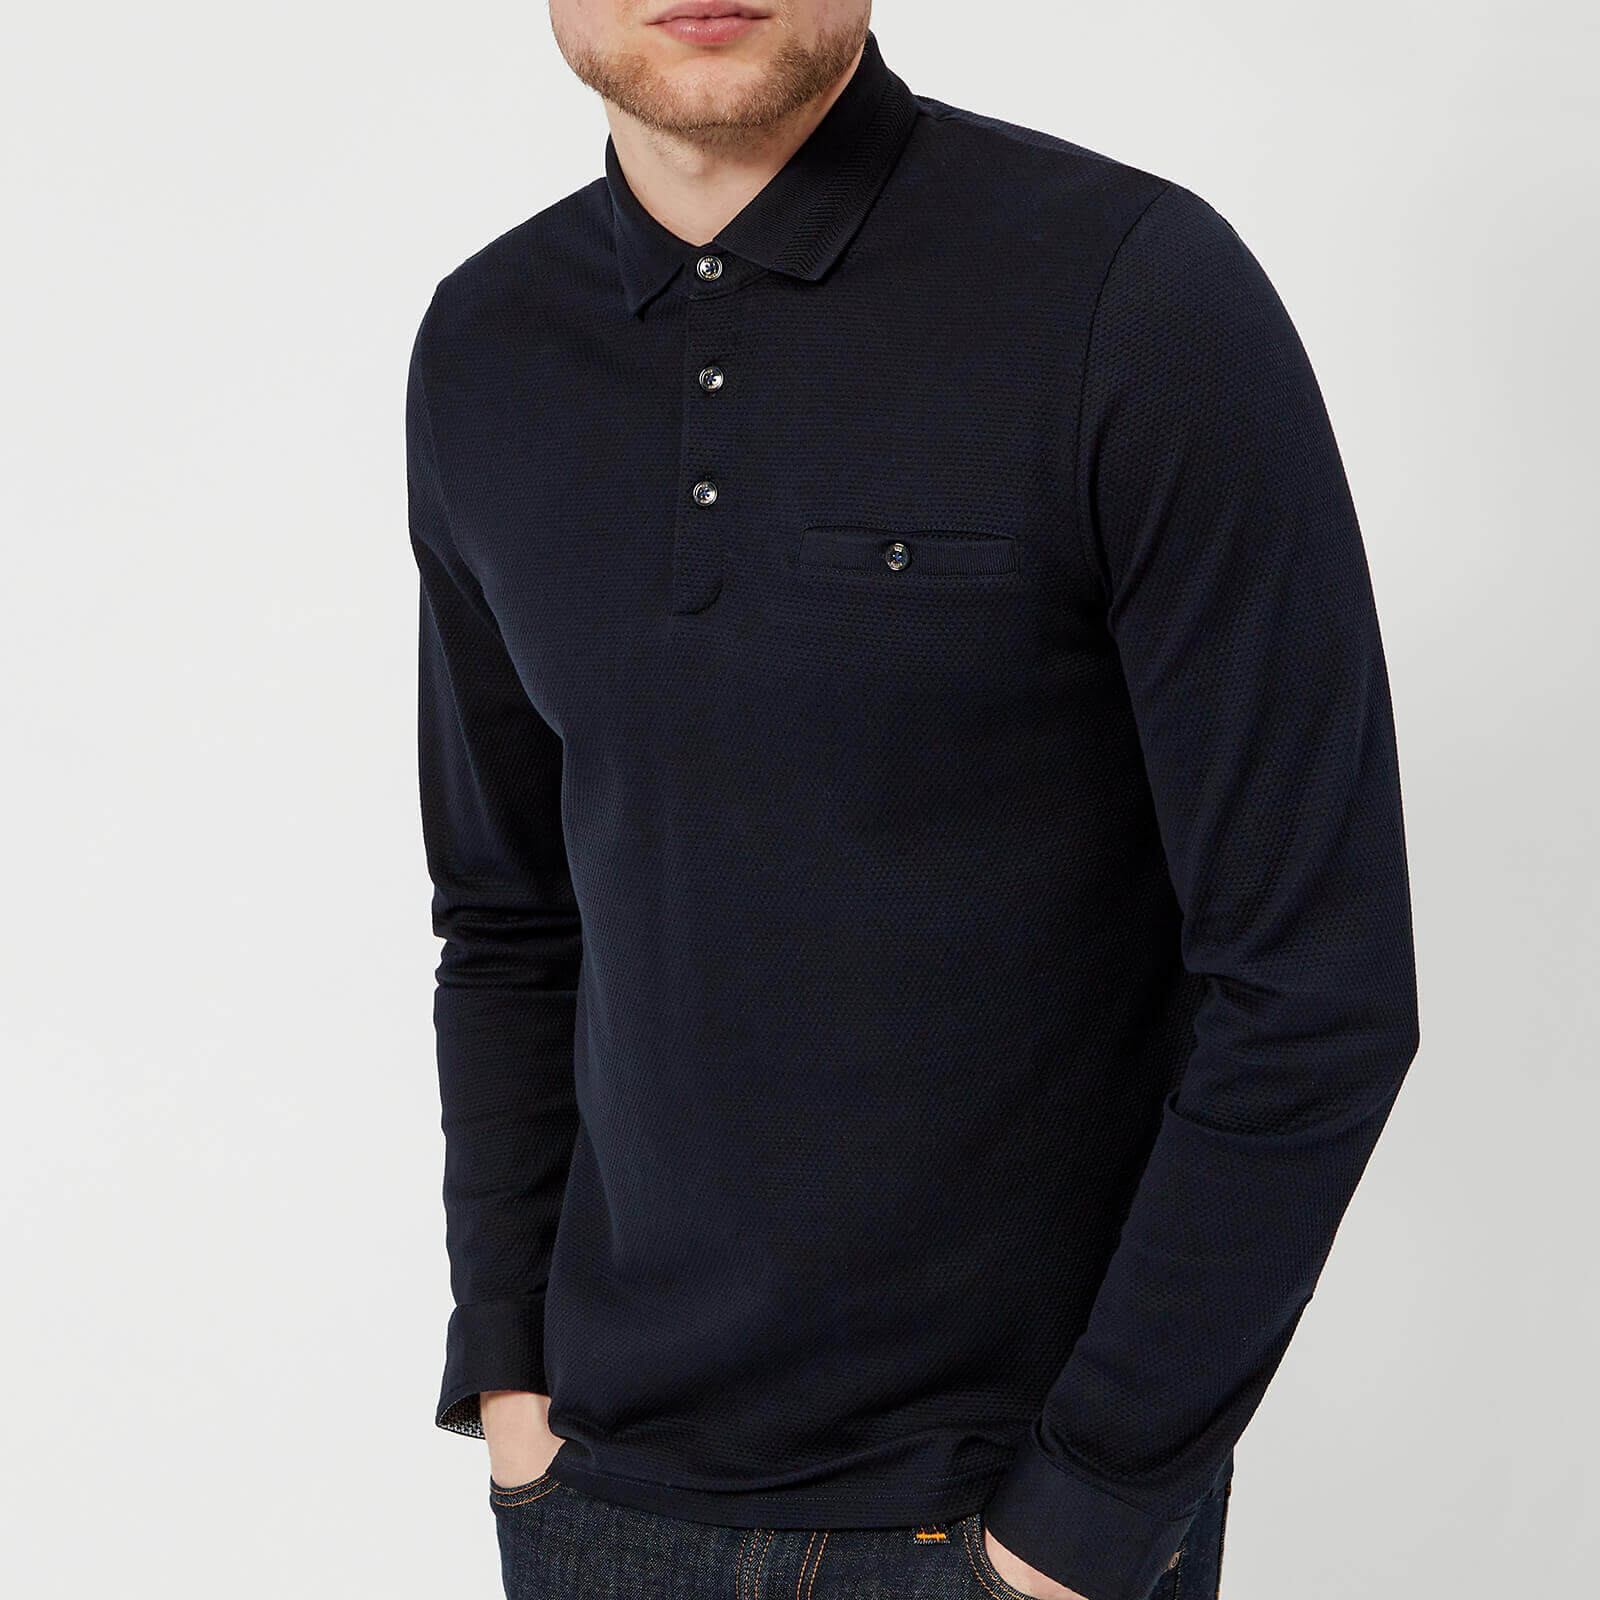 c248d81283c3 Ted Baker Men s Scooby Long Sleeve Polo Shirt - Navy Clothing ...